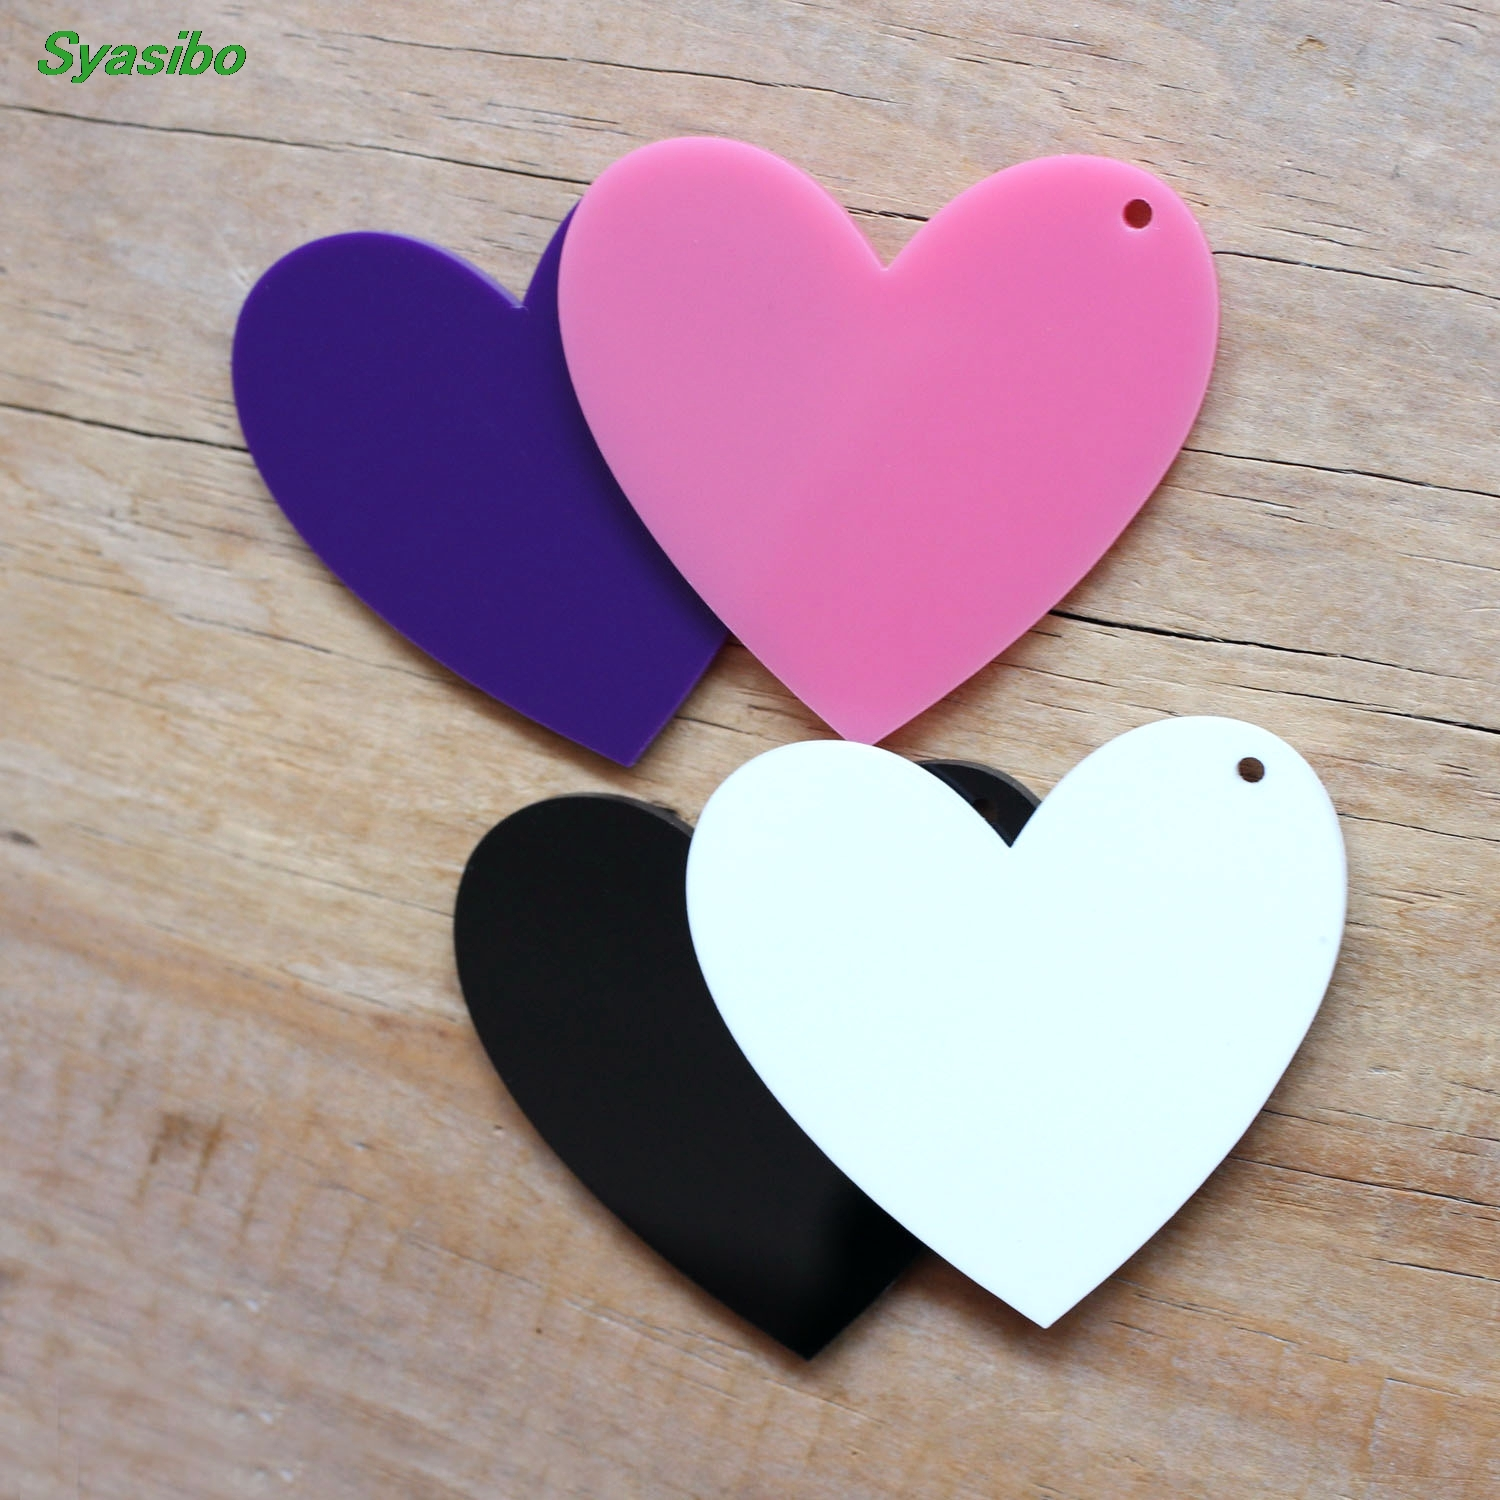 50mm Acrylic Heart Keychains Black, White, Pink, Dark Purple Laser Cut Monogram Keychain Party Ornaments 2inches-AC1054